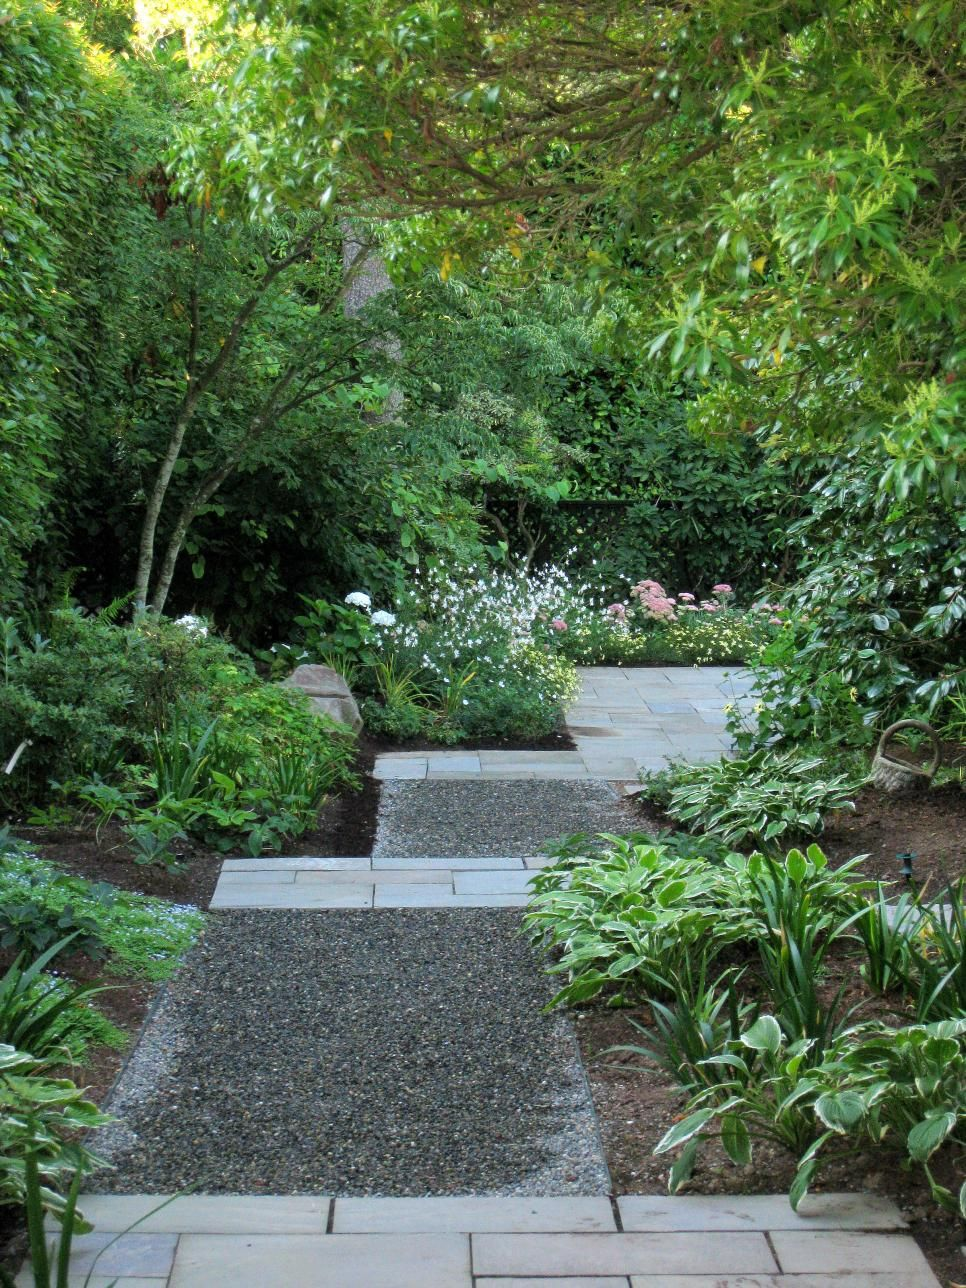 Pictures of garden pathways and walkways | Garden paths, Small backyard  gardens, Walkways paths